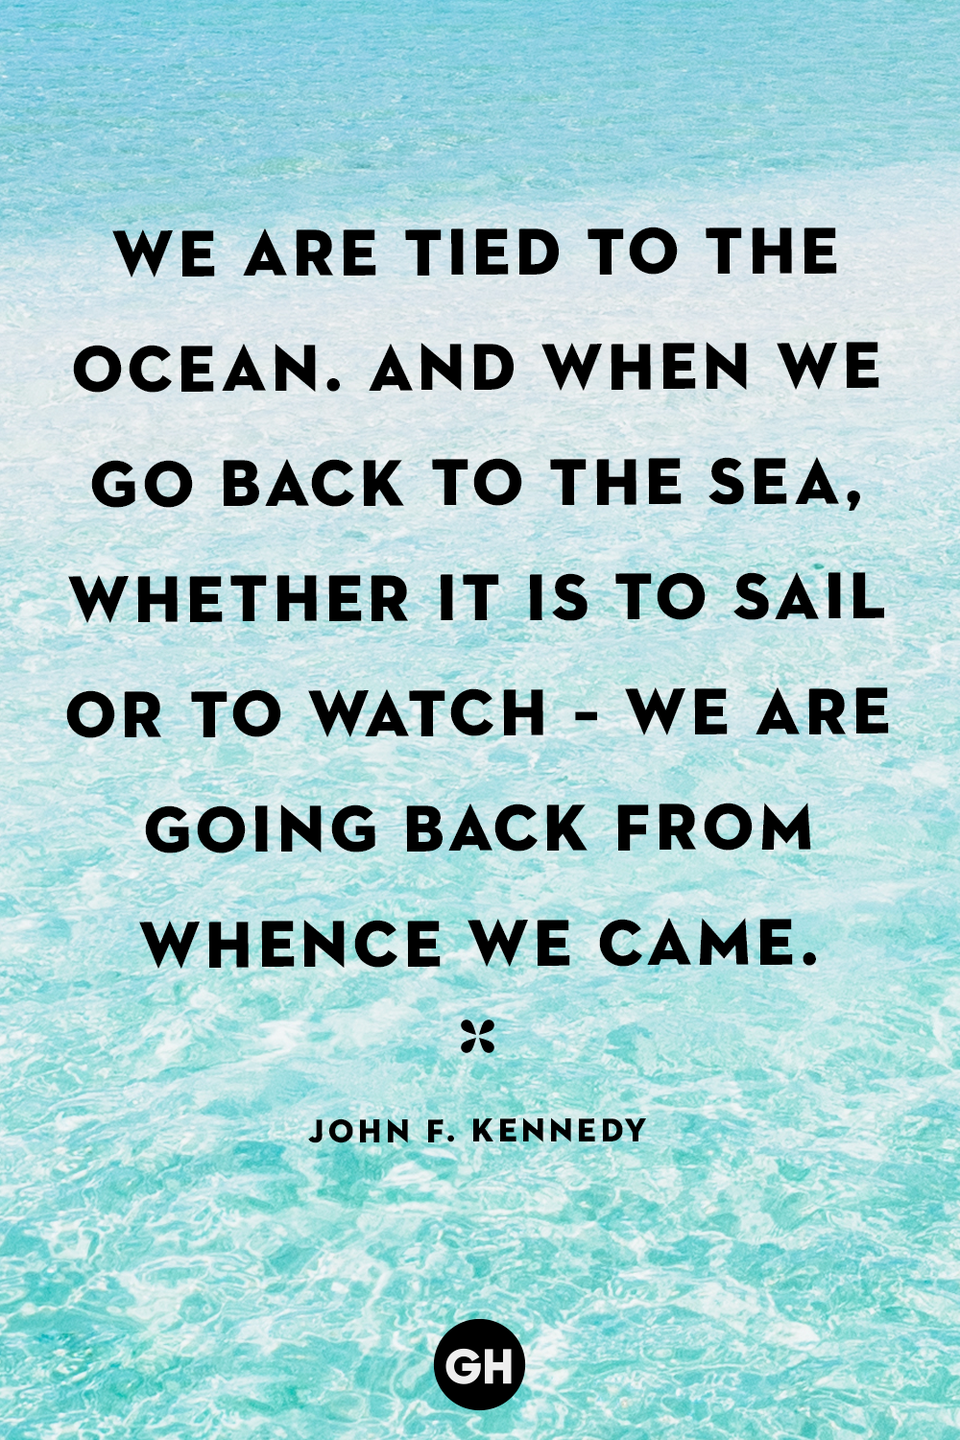 "<p>""We are tied to the ocean. And when we go back to the sea, whether it is to sail or to watch – we are going back from whence we came.""</p>"